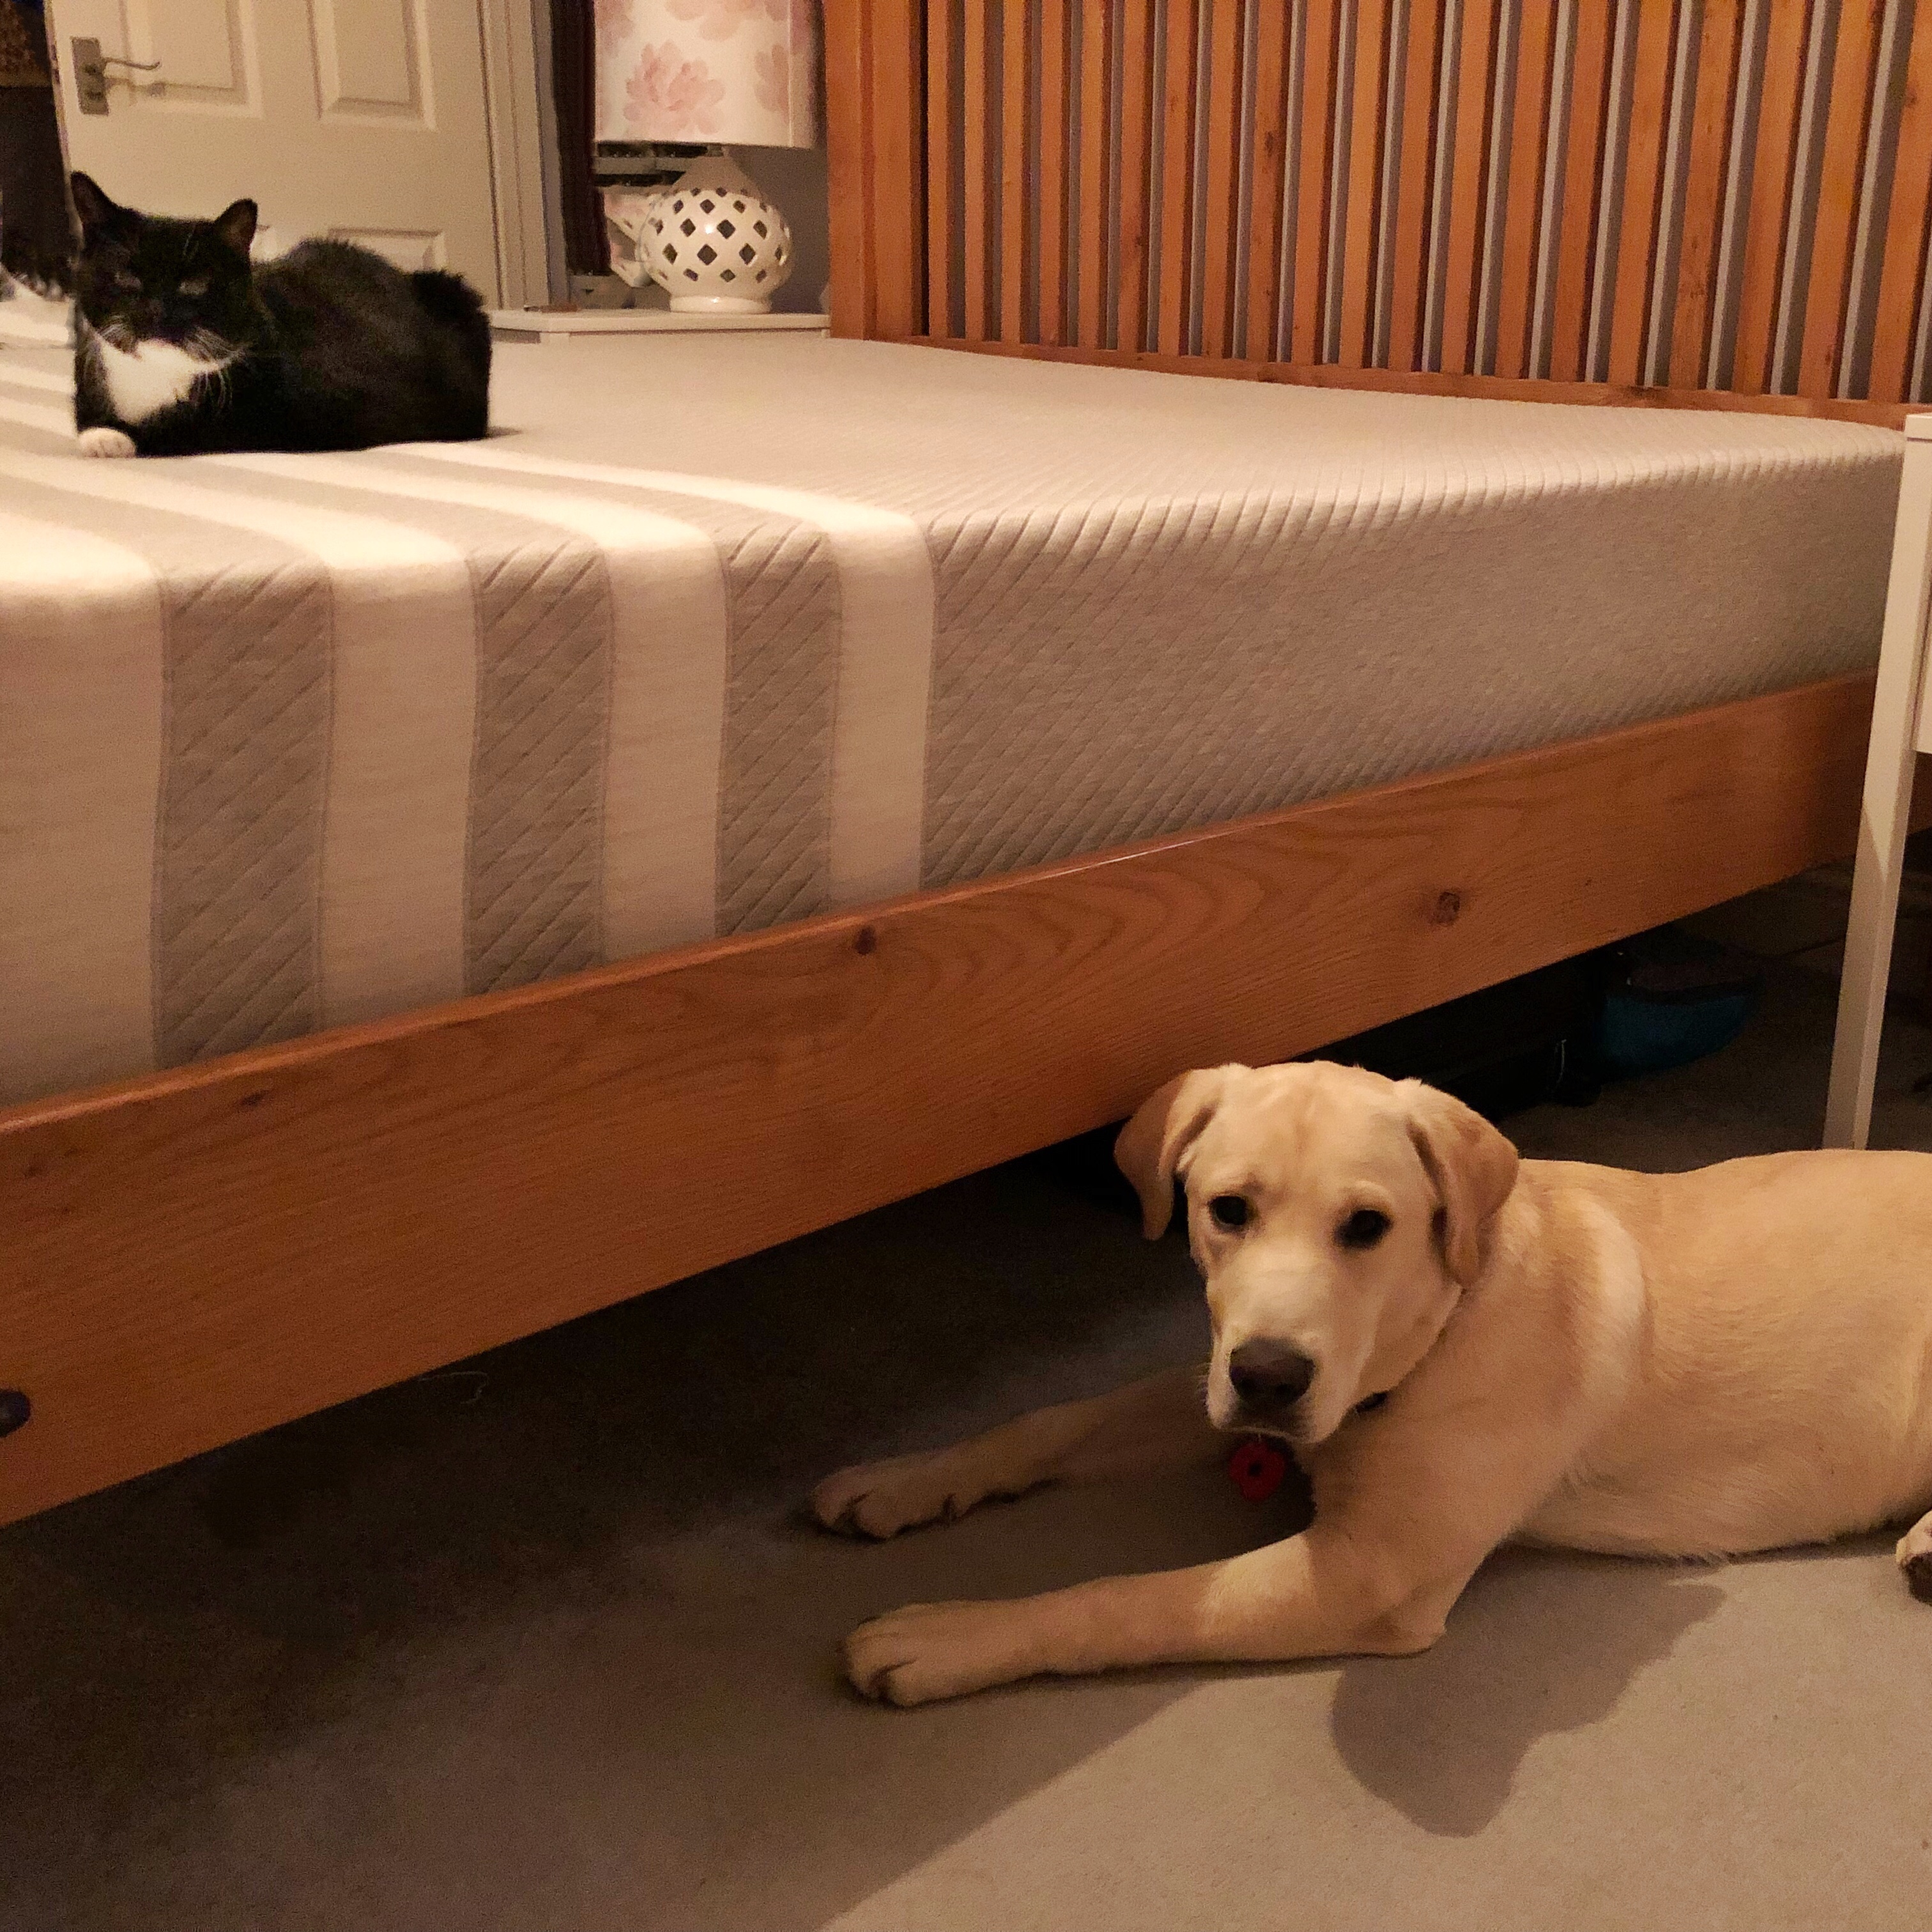 A few of our wooden frame bed from the side and our very haughty looking black and white cat sitting happily on our Leesa Mattress and our dog Hendrix on the floor looking ever so put out at not being allowed on the bed!